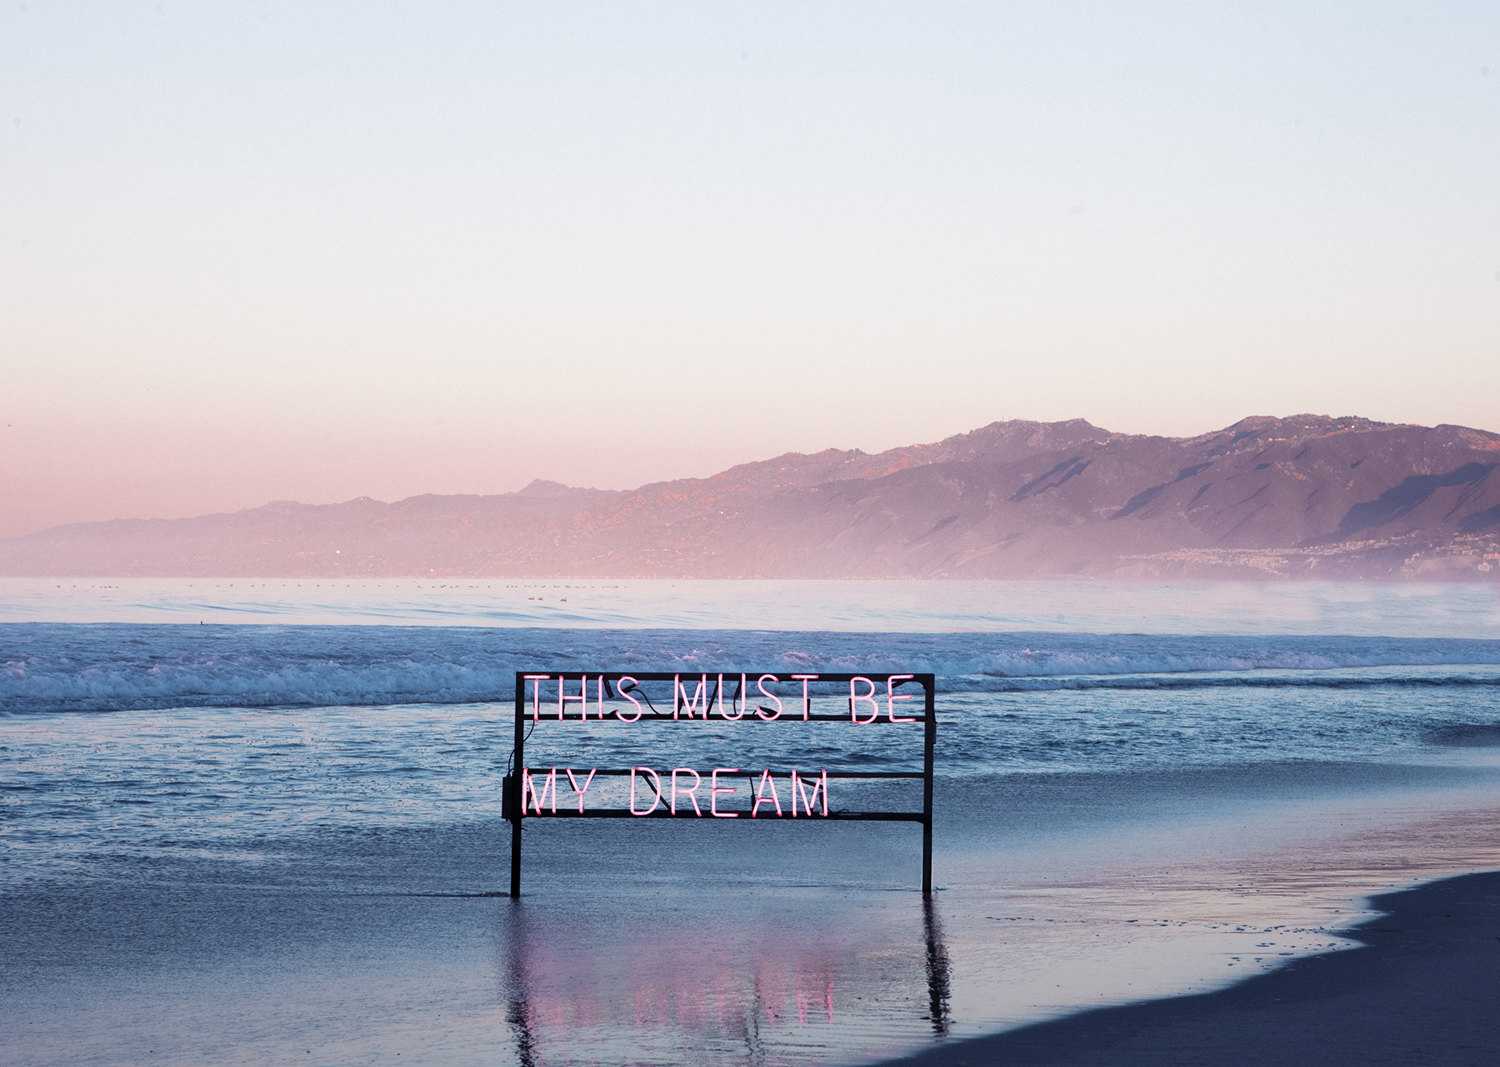 'This Must Be My Dream' — Venice (Los Angeles, California)